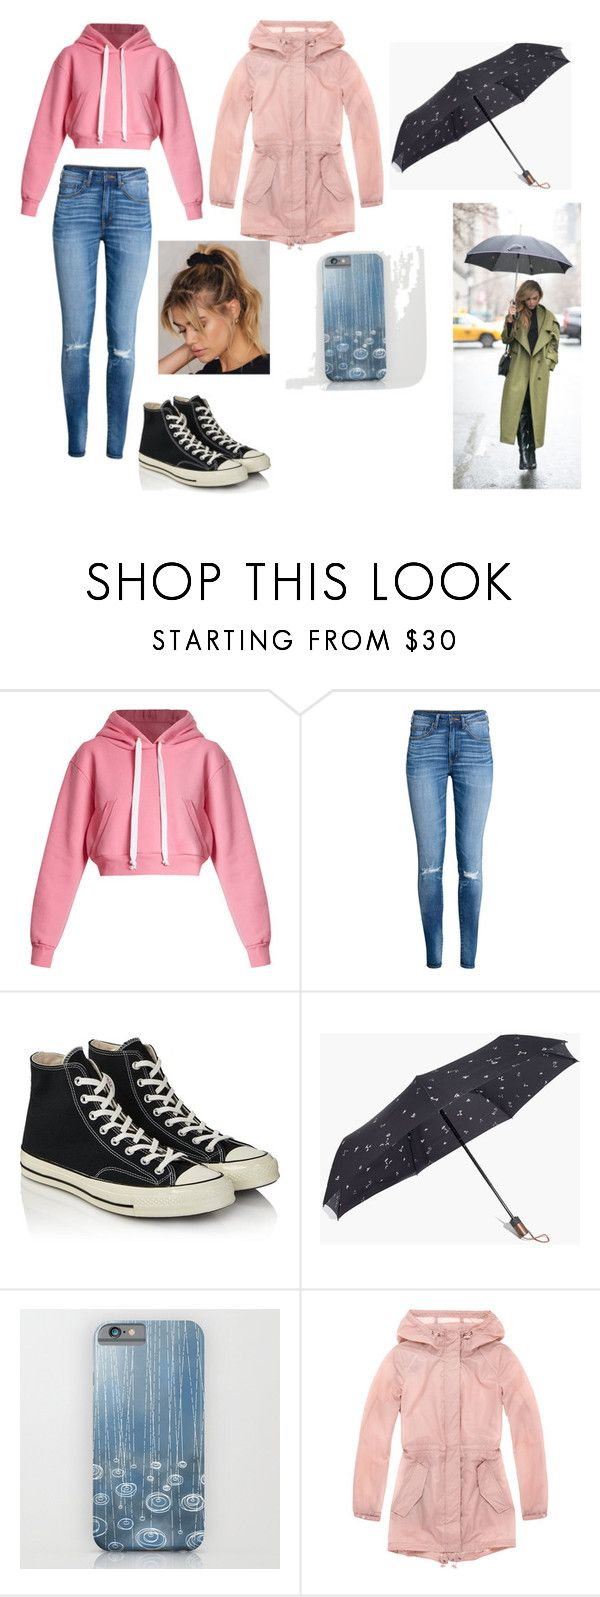 """Rainy day ☔️"" by ickyvicky724 ❤ liked on Polyvore featuring Natasha Zinko, H&M, Converse, Madewell and Marc New York"